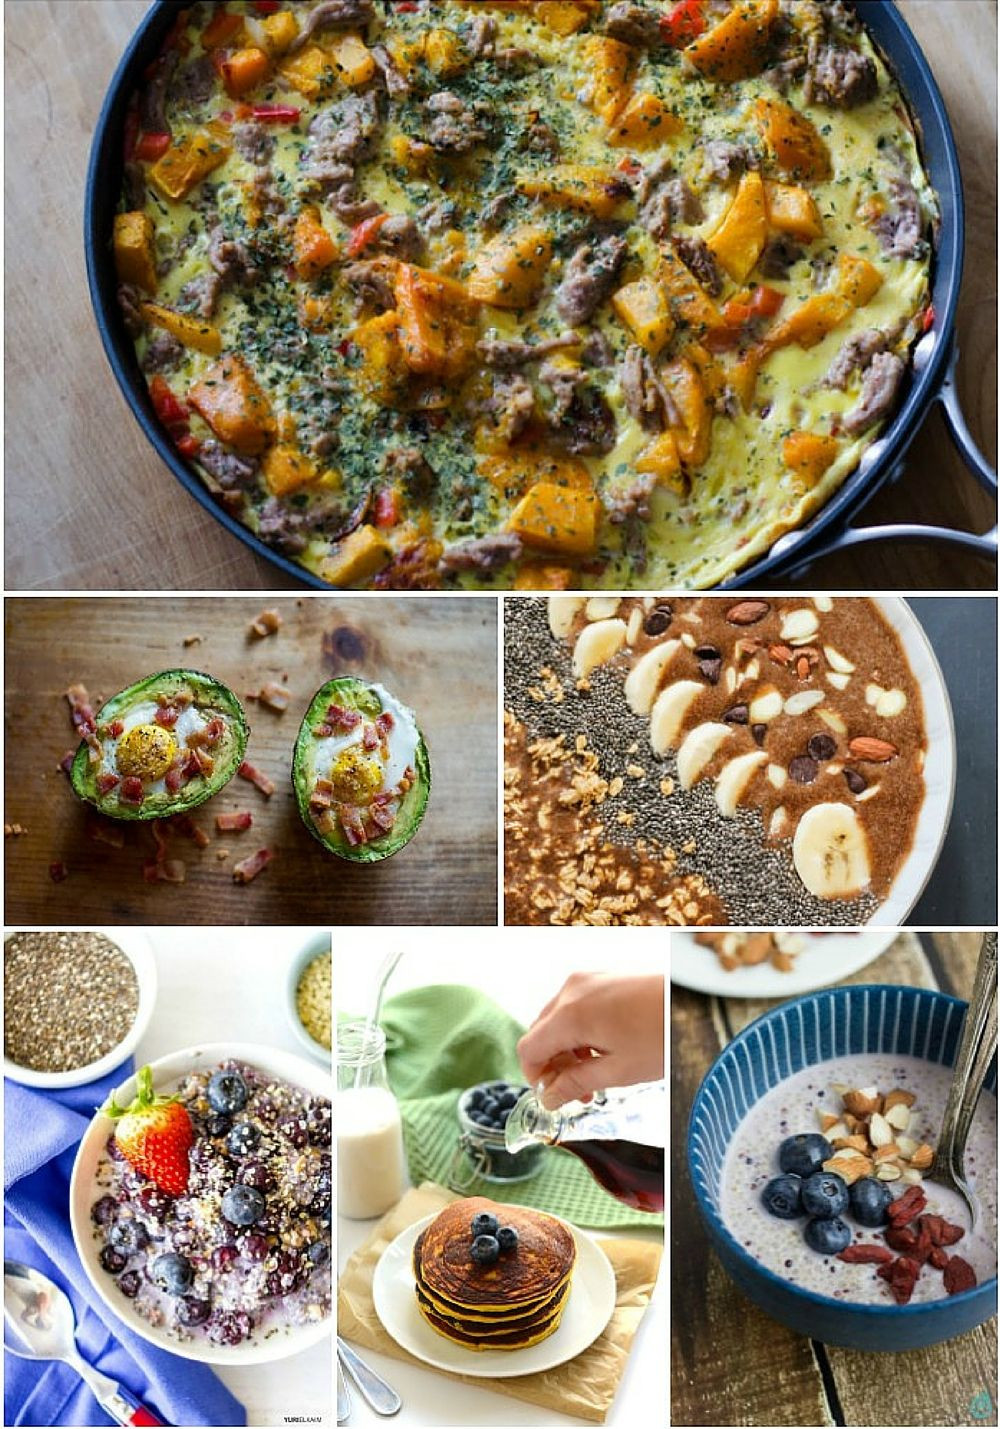 Healthy Breakfast Protein  21 Healthy High Protein Breakfasts You Need to Make